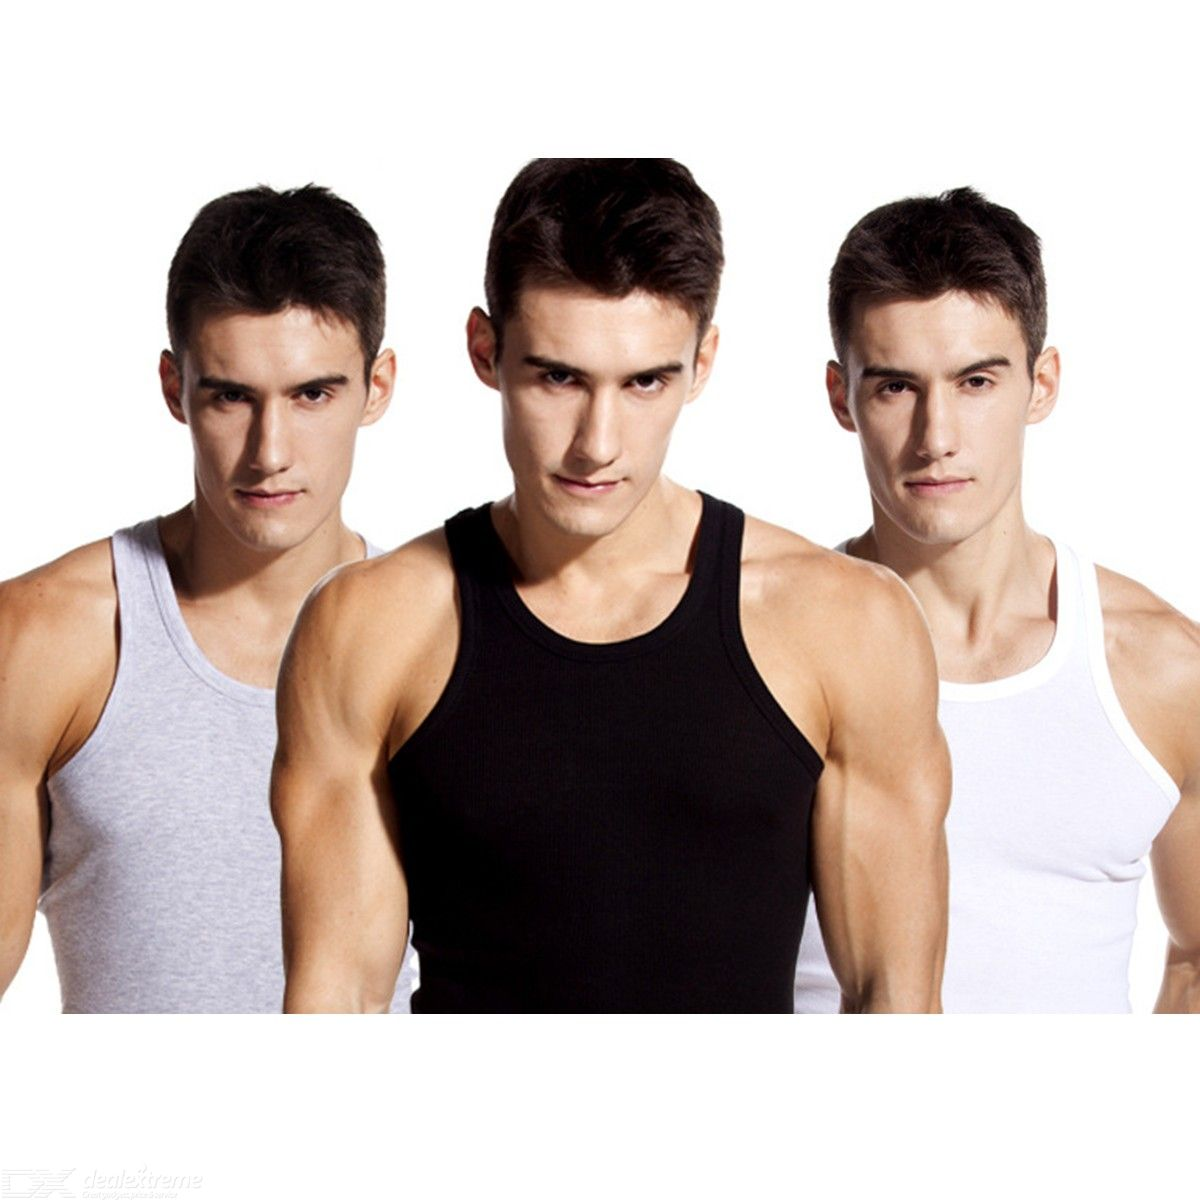 b19d83f624 Summer Male Slim Casual Tank Top Cotton O-neck Sleeveless Undershirts For  Men